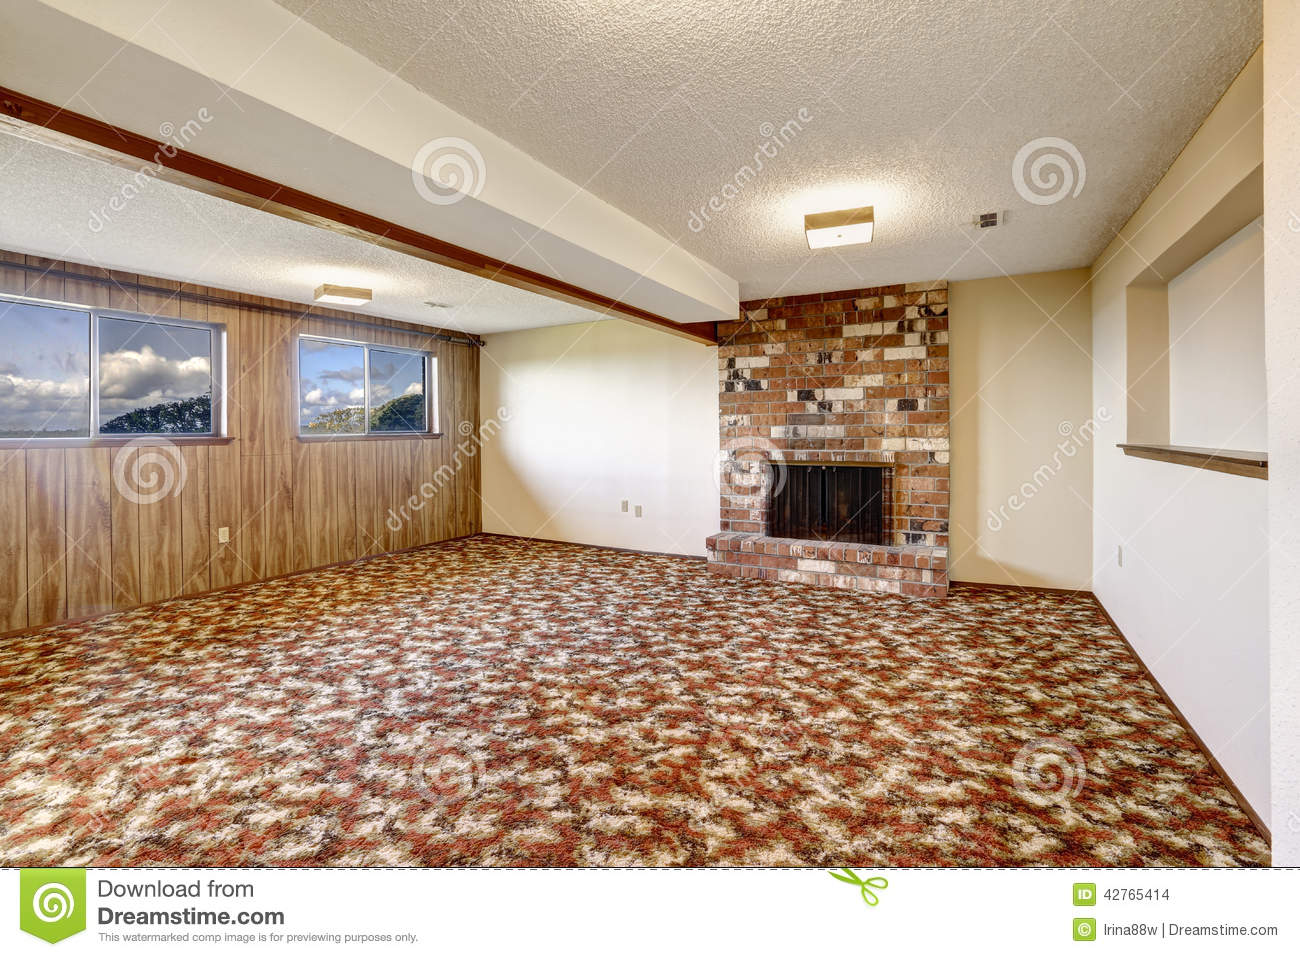 Empty Living Room With Brick Fireplace And Colorful Carpet Floor Stock Photo - Image: 42765414